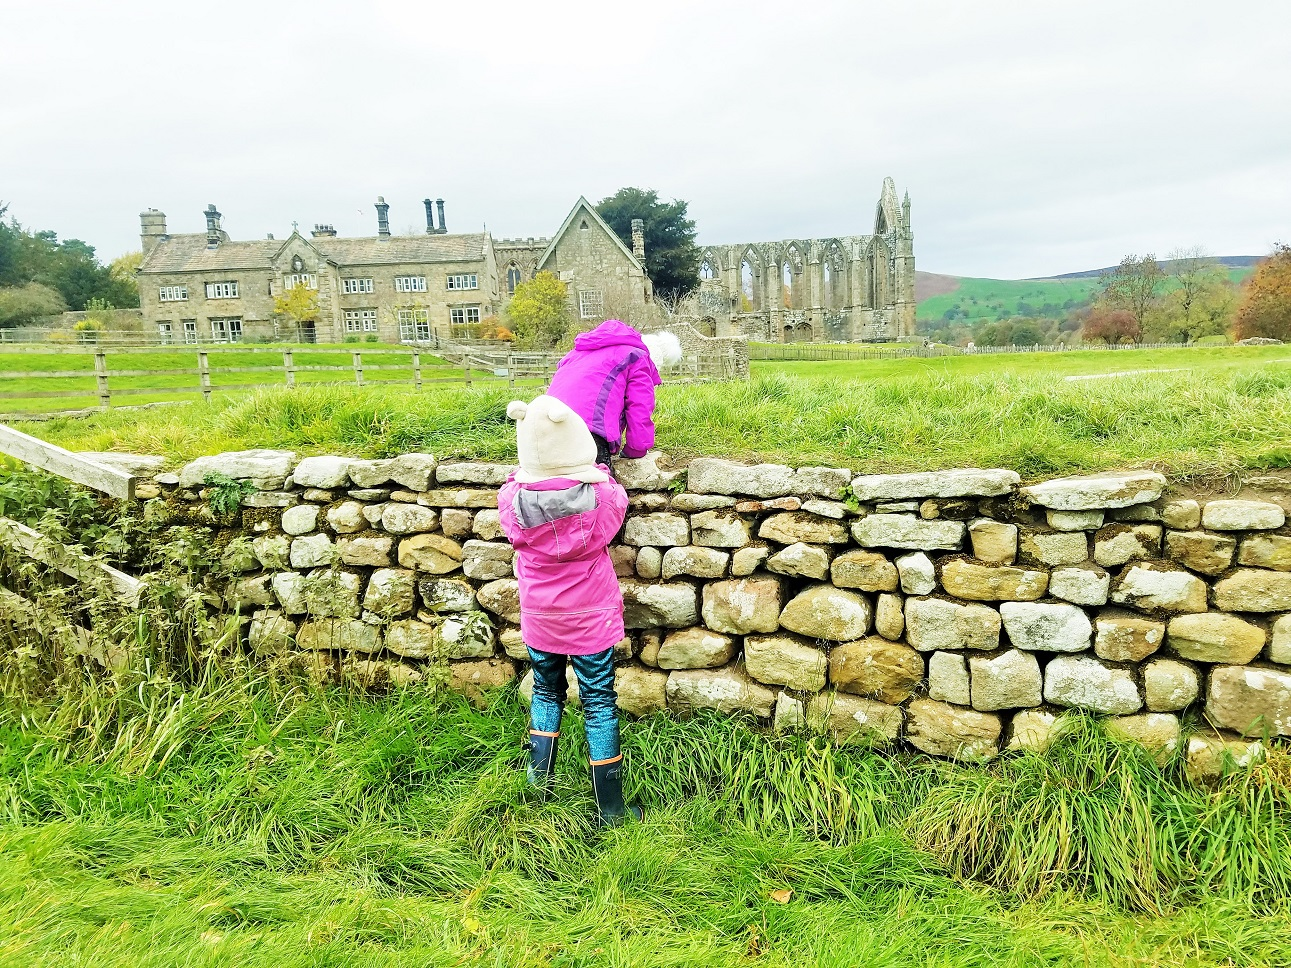 How to prepare little kids for big changes - sisters helping each other climb the wall at Bolton Abbey